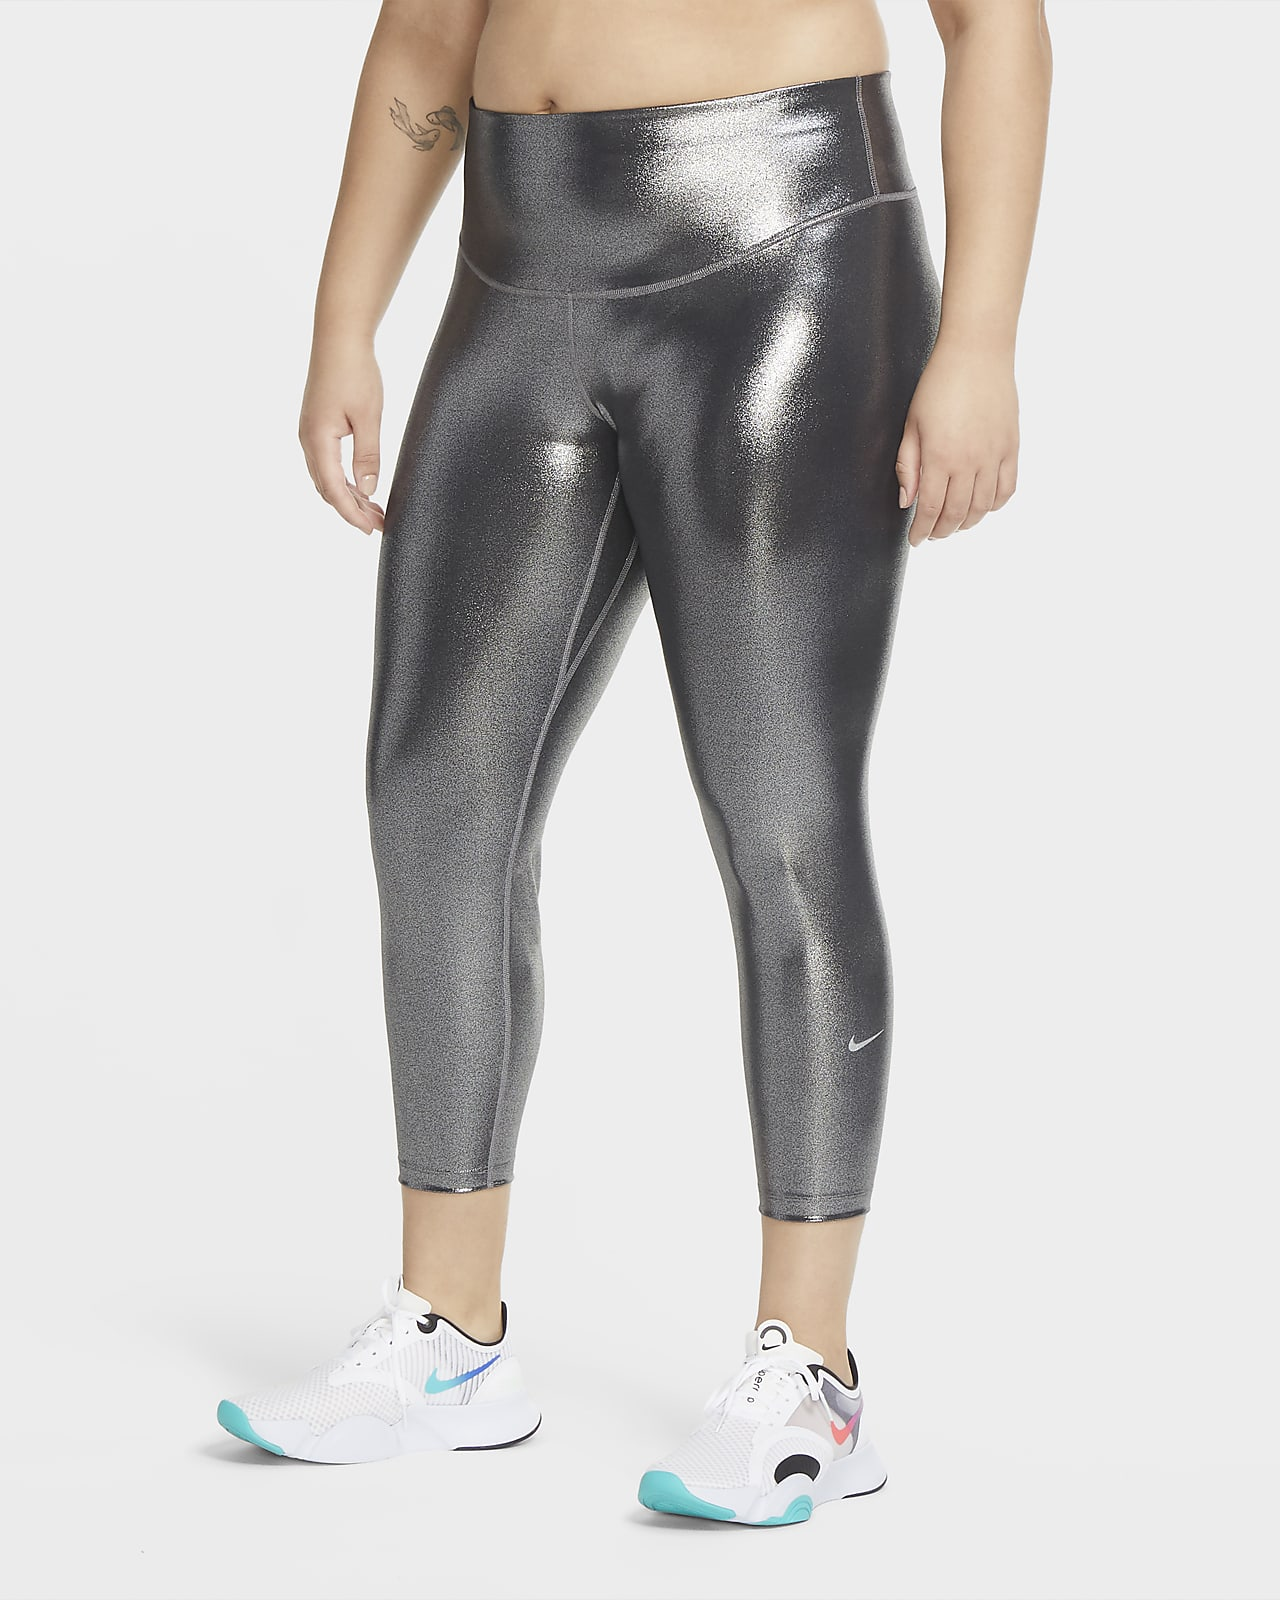 Nike One Icon Clash 7/8-tights voor dames (grote maten)